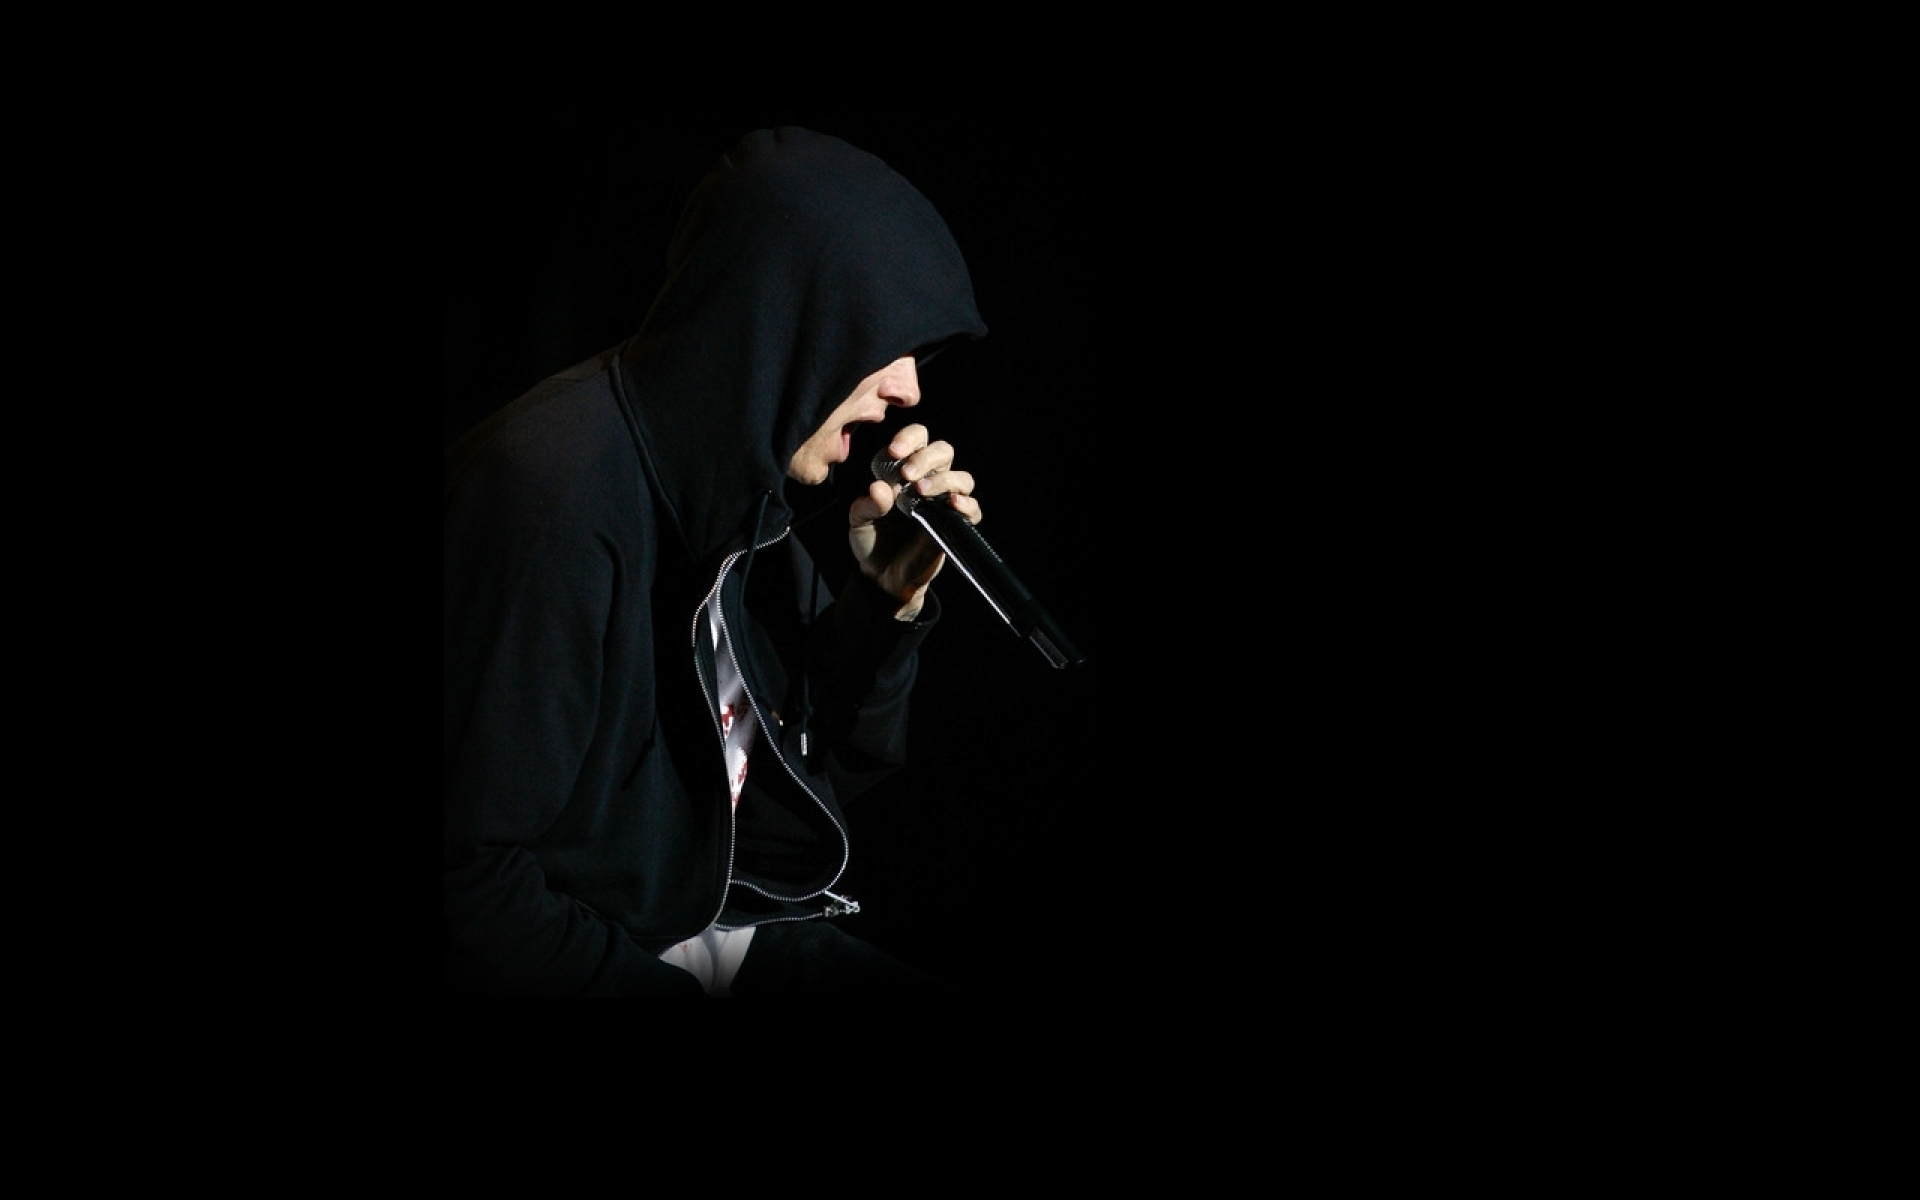 eminem cool wallpapers - photo #30